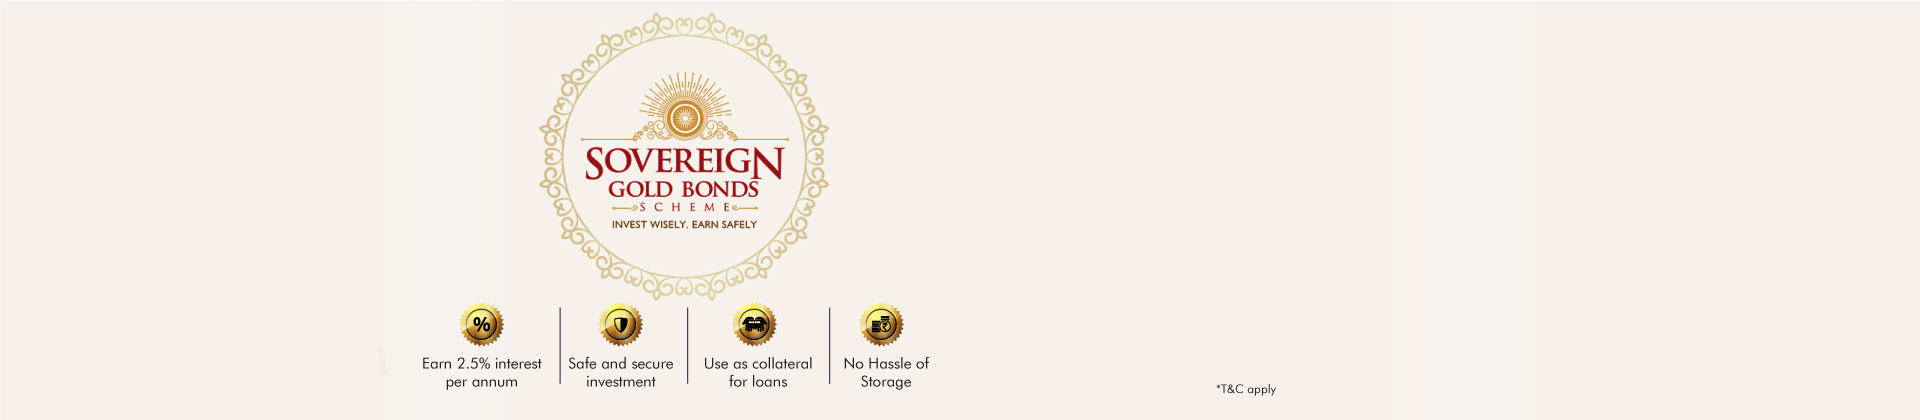 Axis Bank Gold Sovereign Web Banner